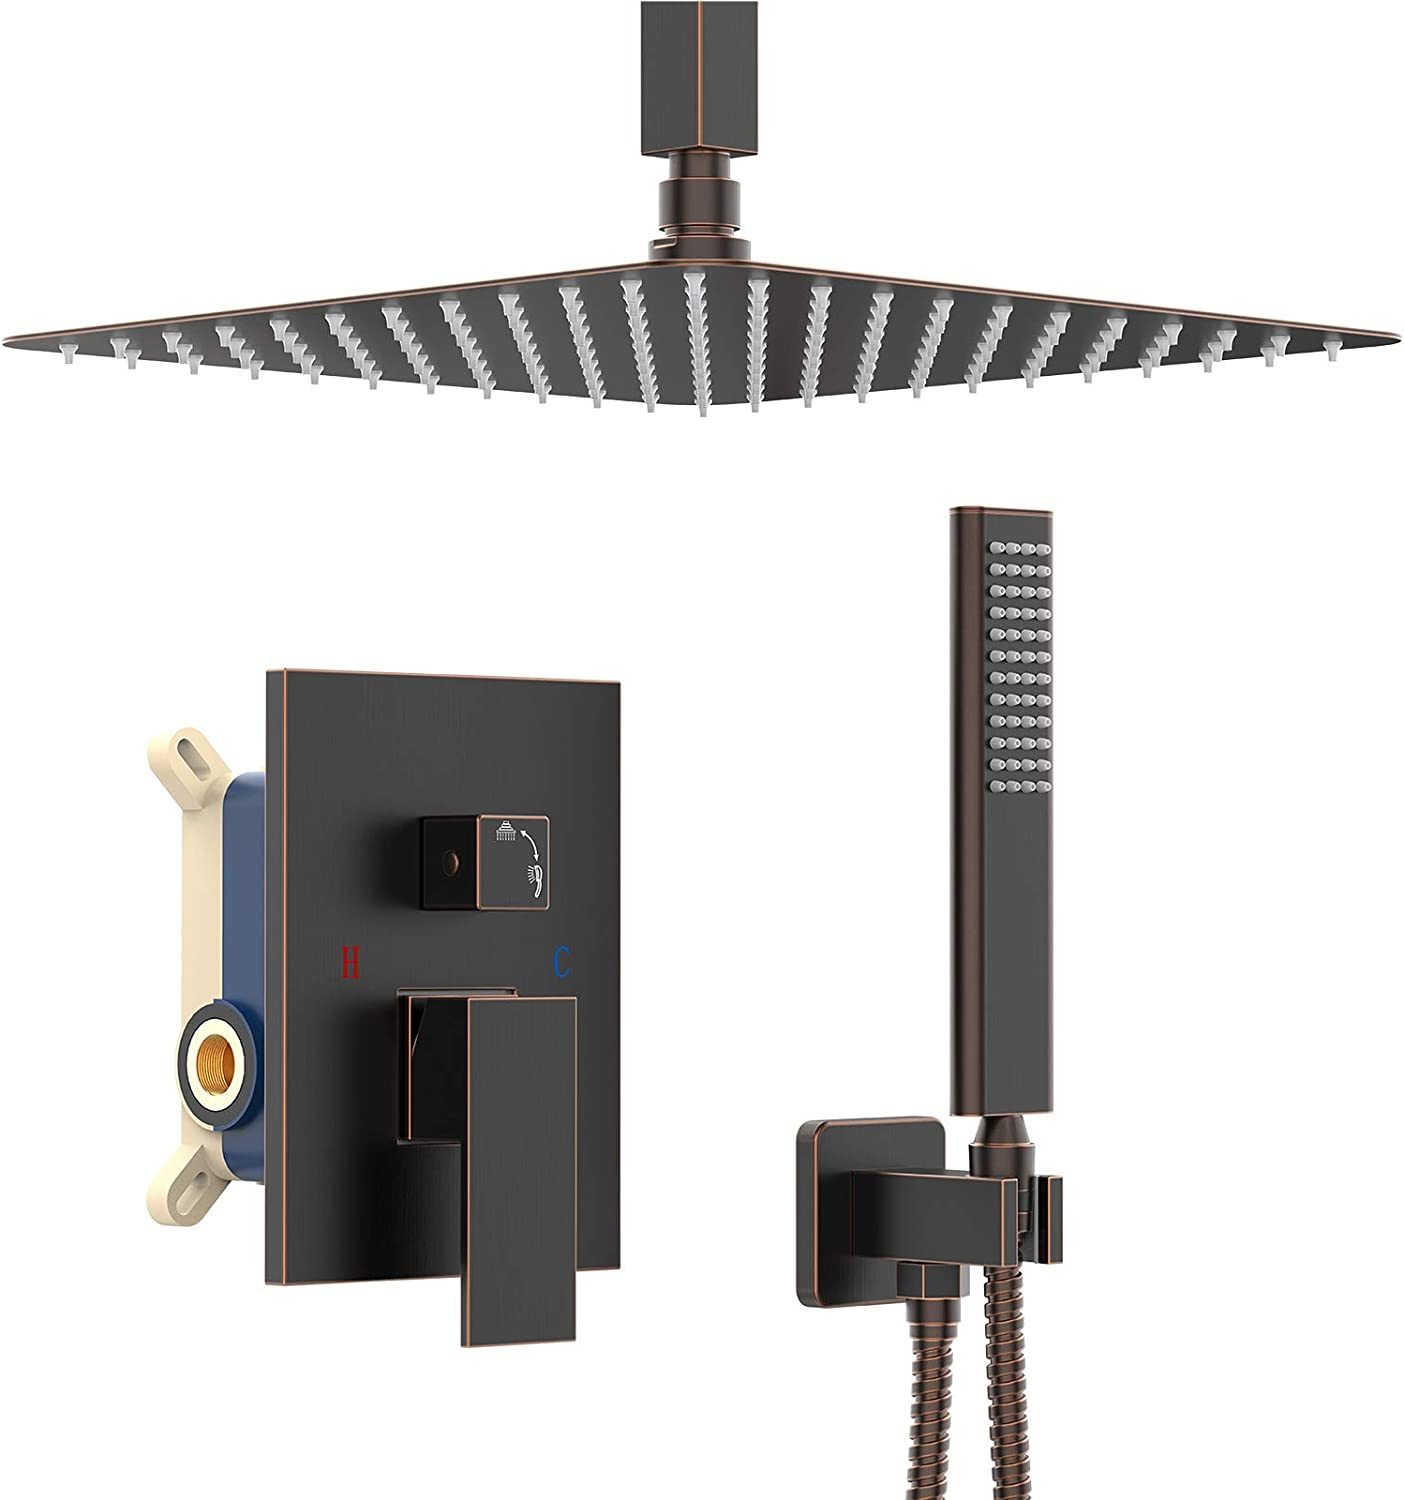 IRIBER Oil Rubbed Bronze Ceiling Mount Rain Shower System with 12 Inch Shower Head and Handheld Bathroom Square Shower Faucet Set Contain Shower Mixer and Trim Kit (Valve Included)